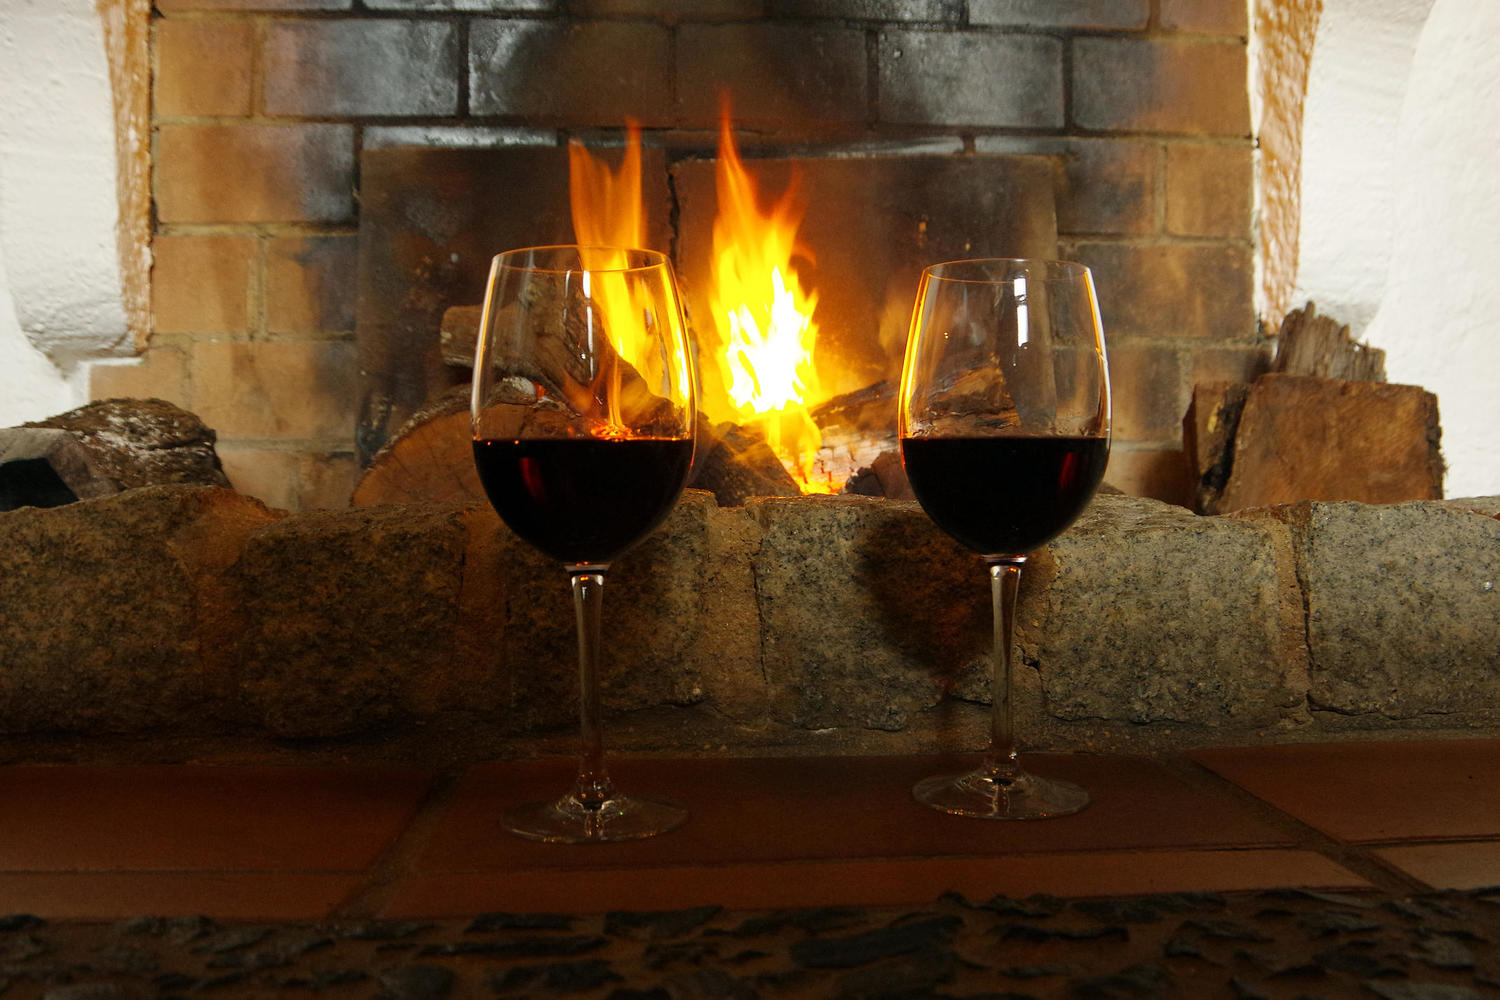 Glass of red wine warming in front of the fire in Linares